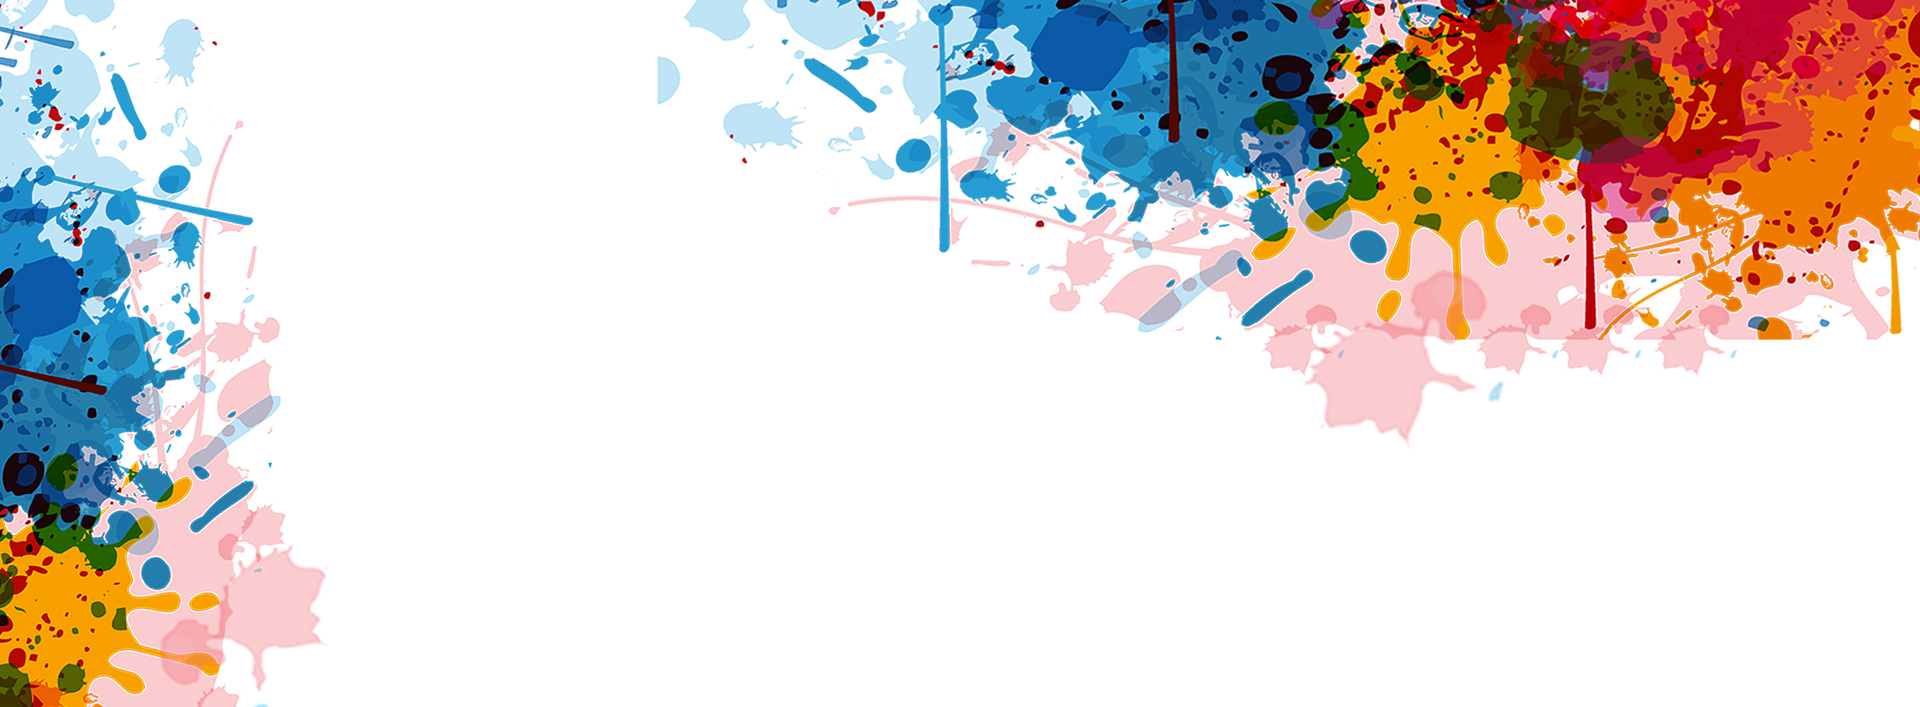 creative watercolor splatter background  watercolor